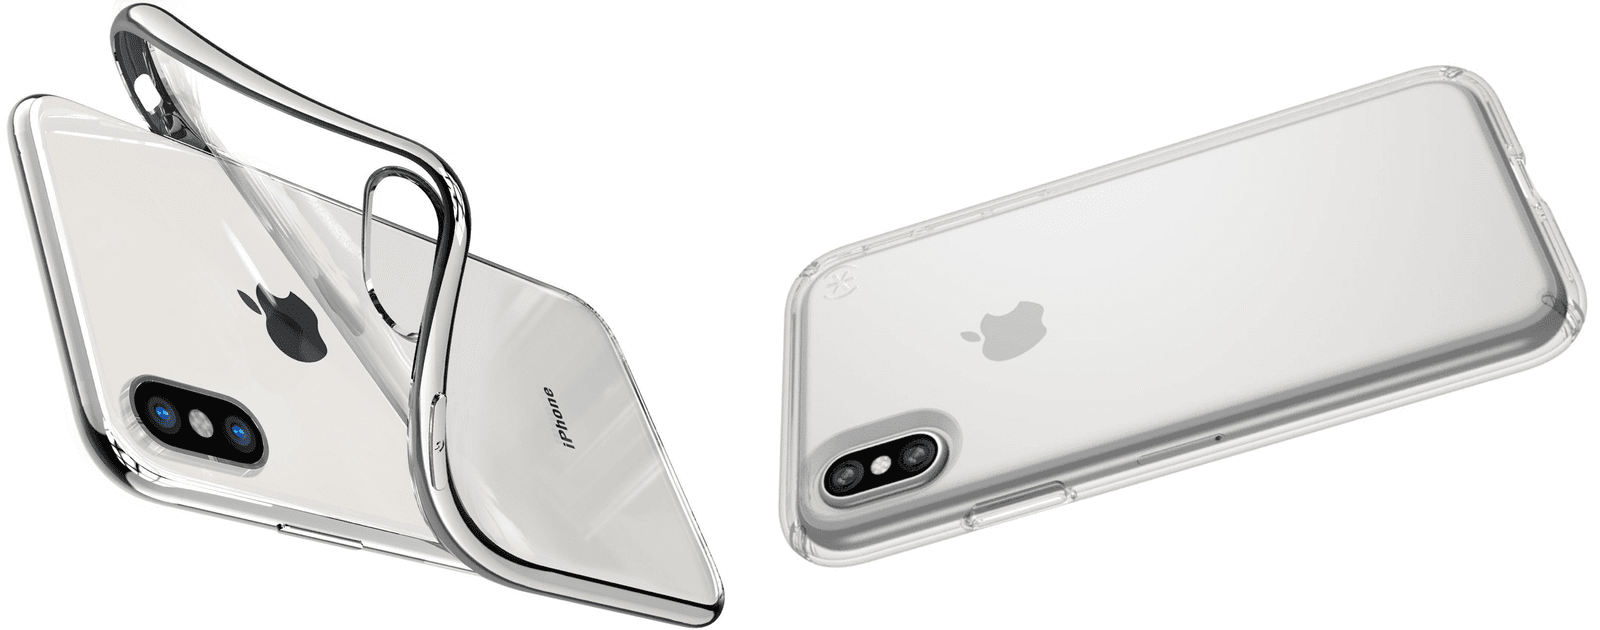 76c43ae07eda80 6 Clear iPhone X Cases to Show Off Your Purchase - The Mac Observer